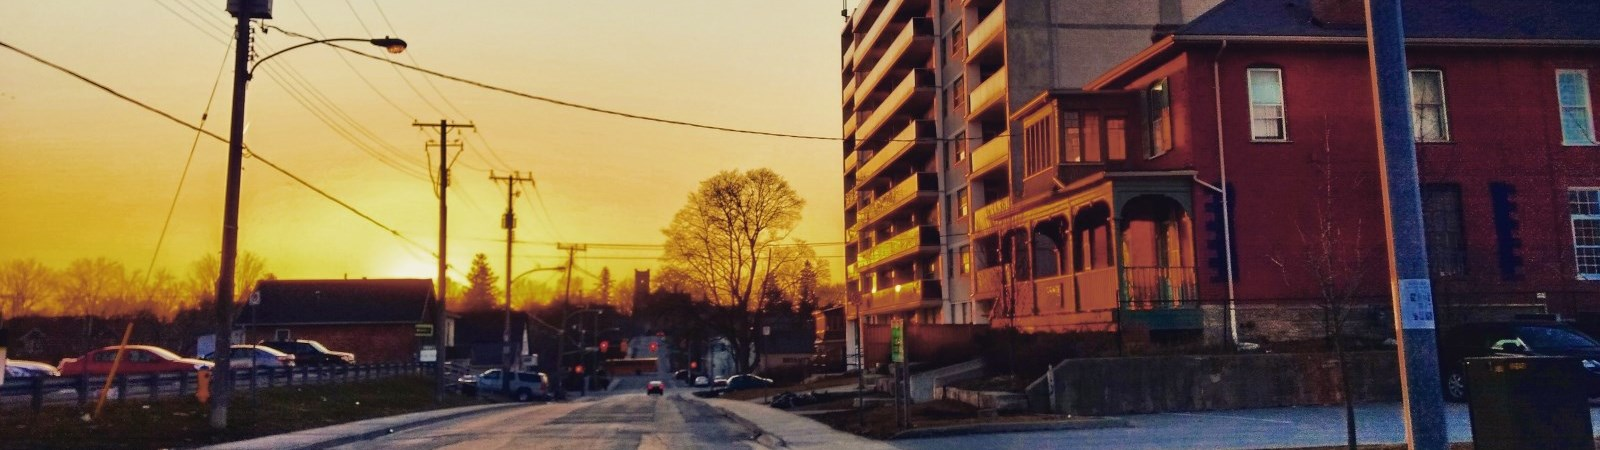 Photo of Brock Street Peterborough at sunset.